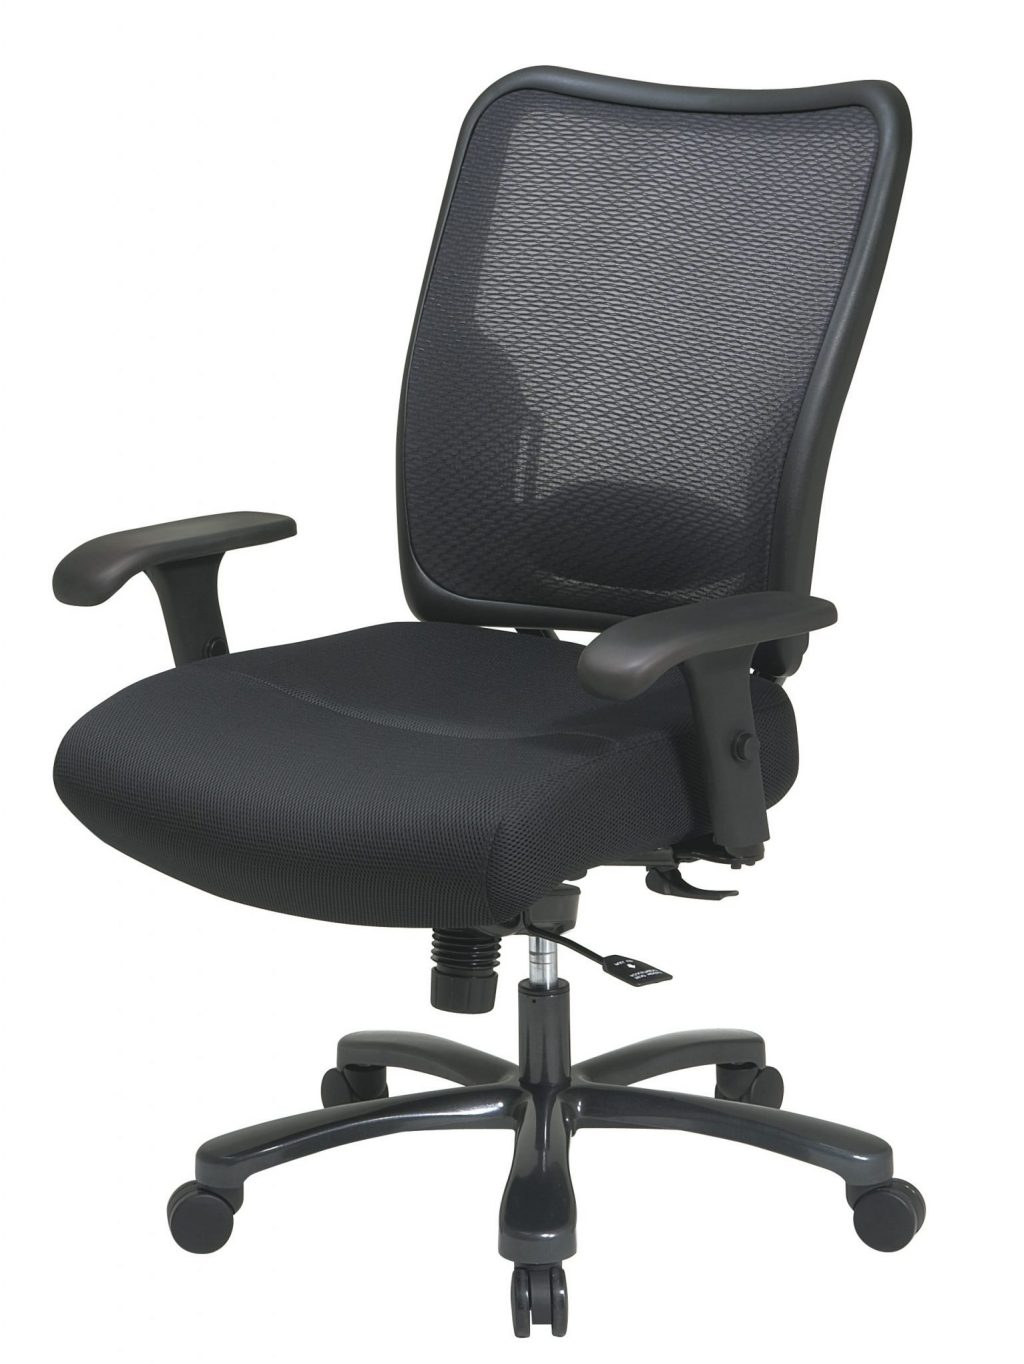 1024x1364 Office Chair Clip Art 76 Interesting Images On Office Chair Clip